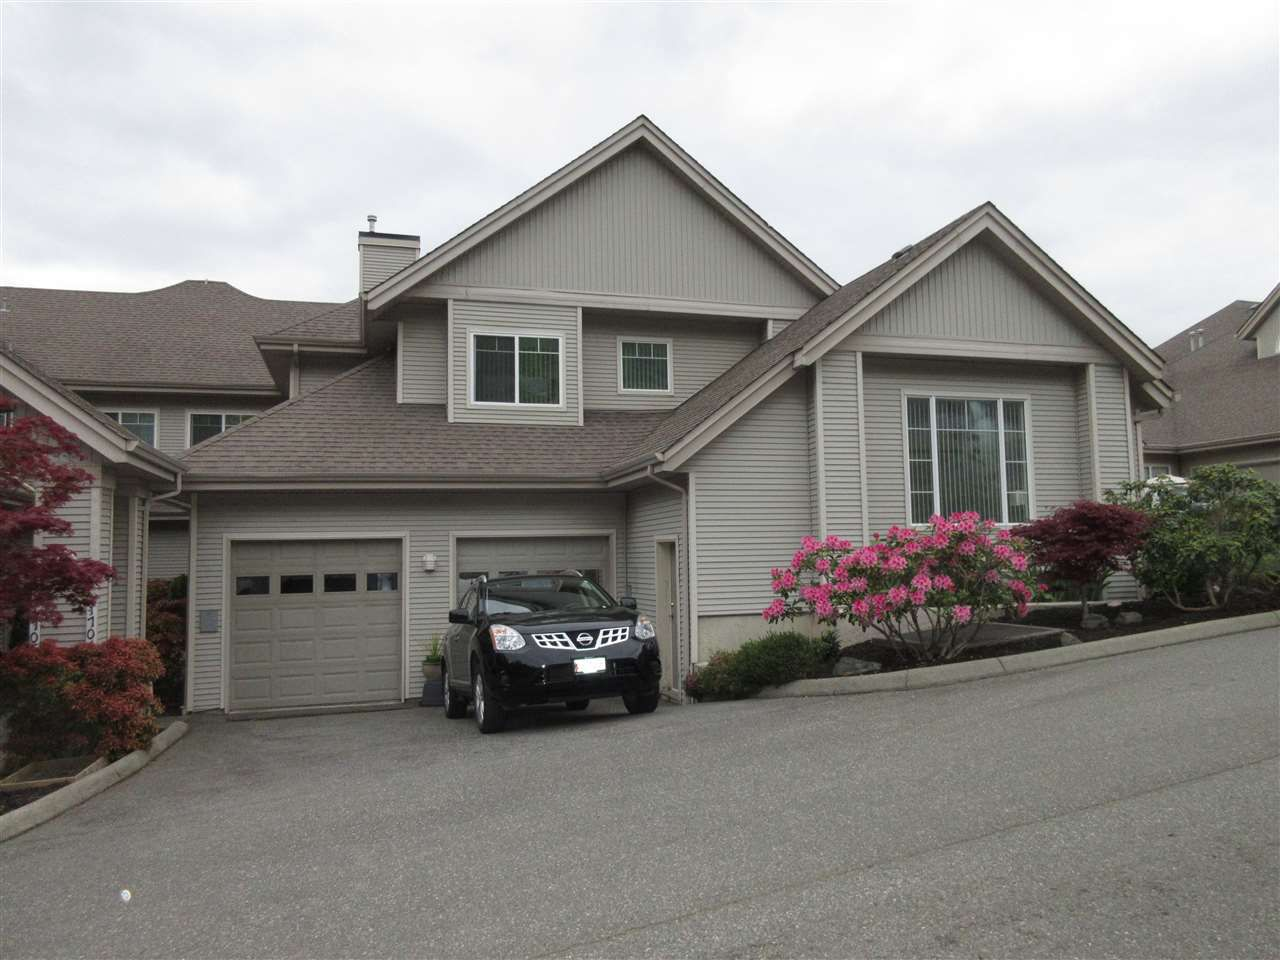 """Main Photo: 1704 5260 GOLDSPRING Place in Chilliwack: Promontory Townhouse for sale in """"Goldspring Heights"""" (Sardis)  : MLS®# R2058547"""